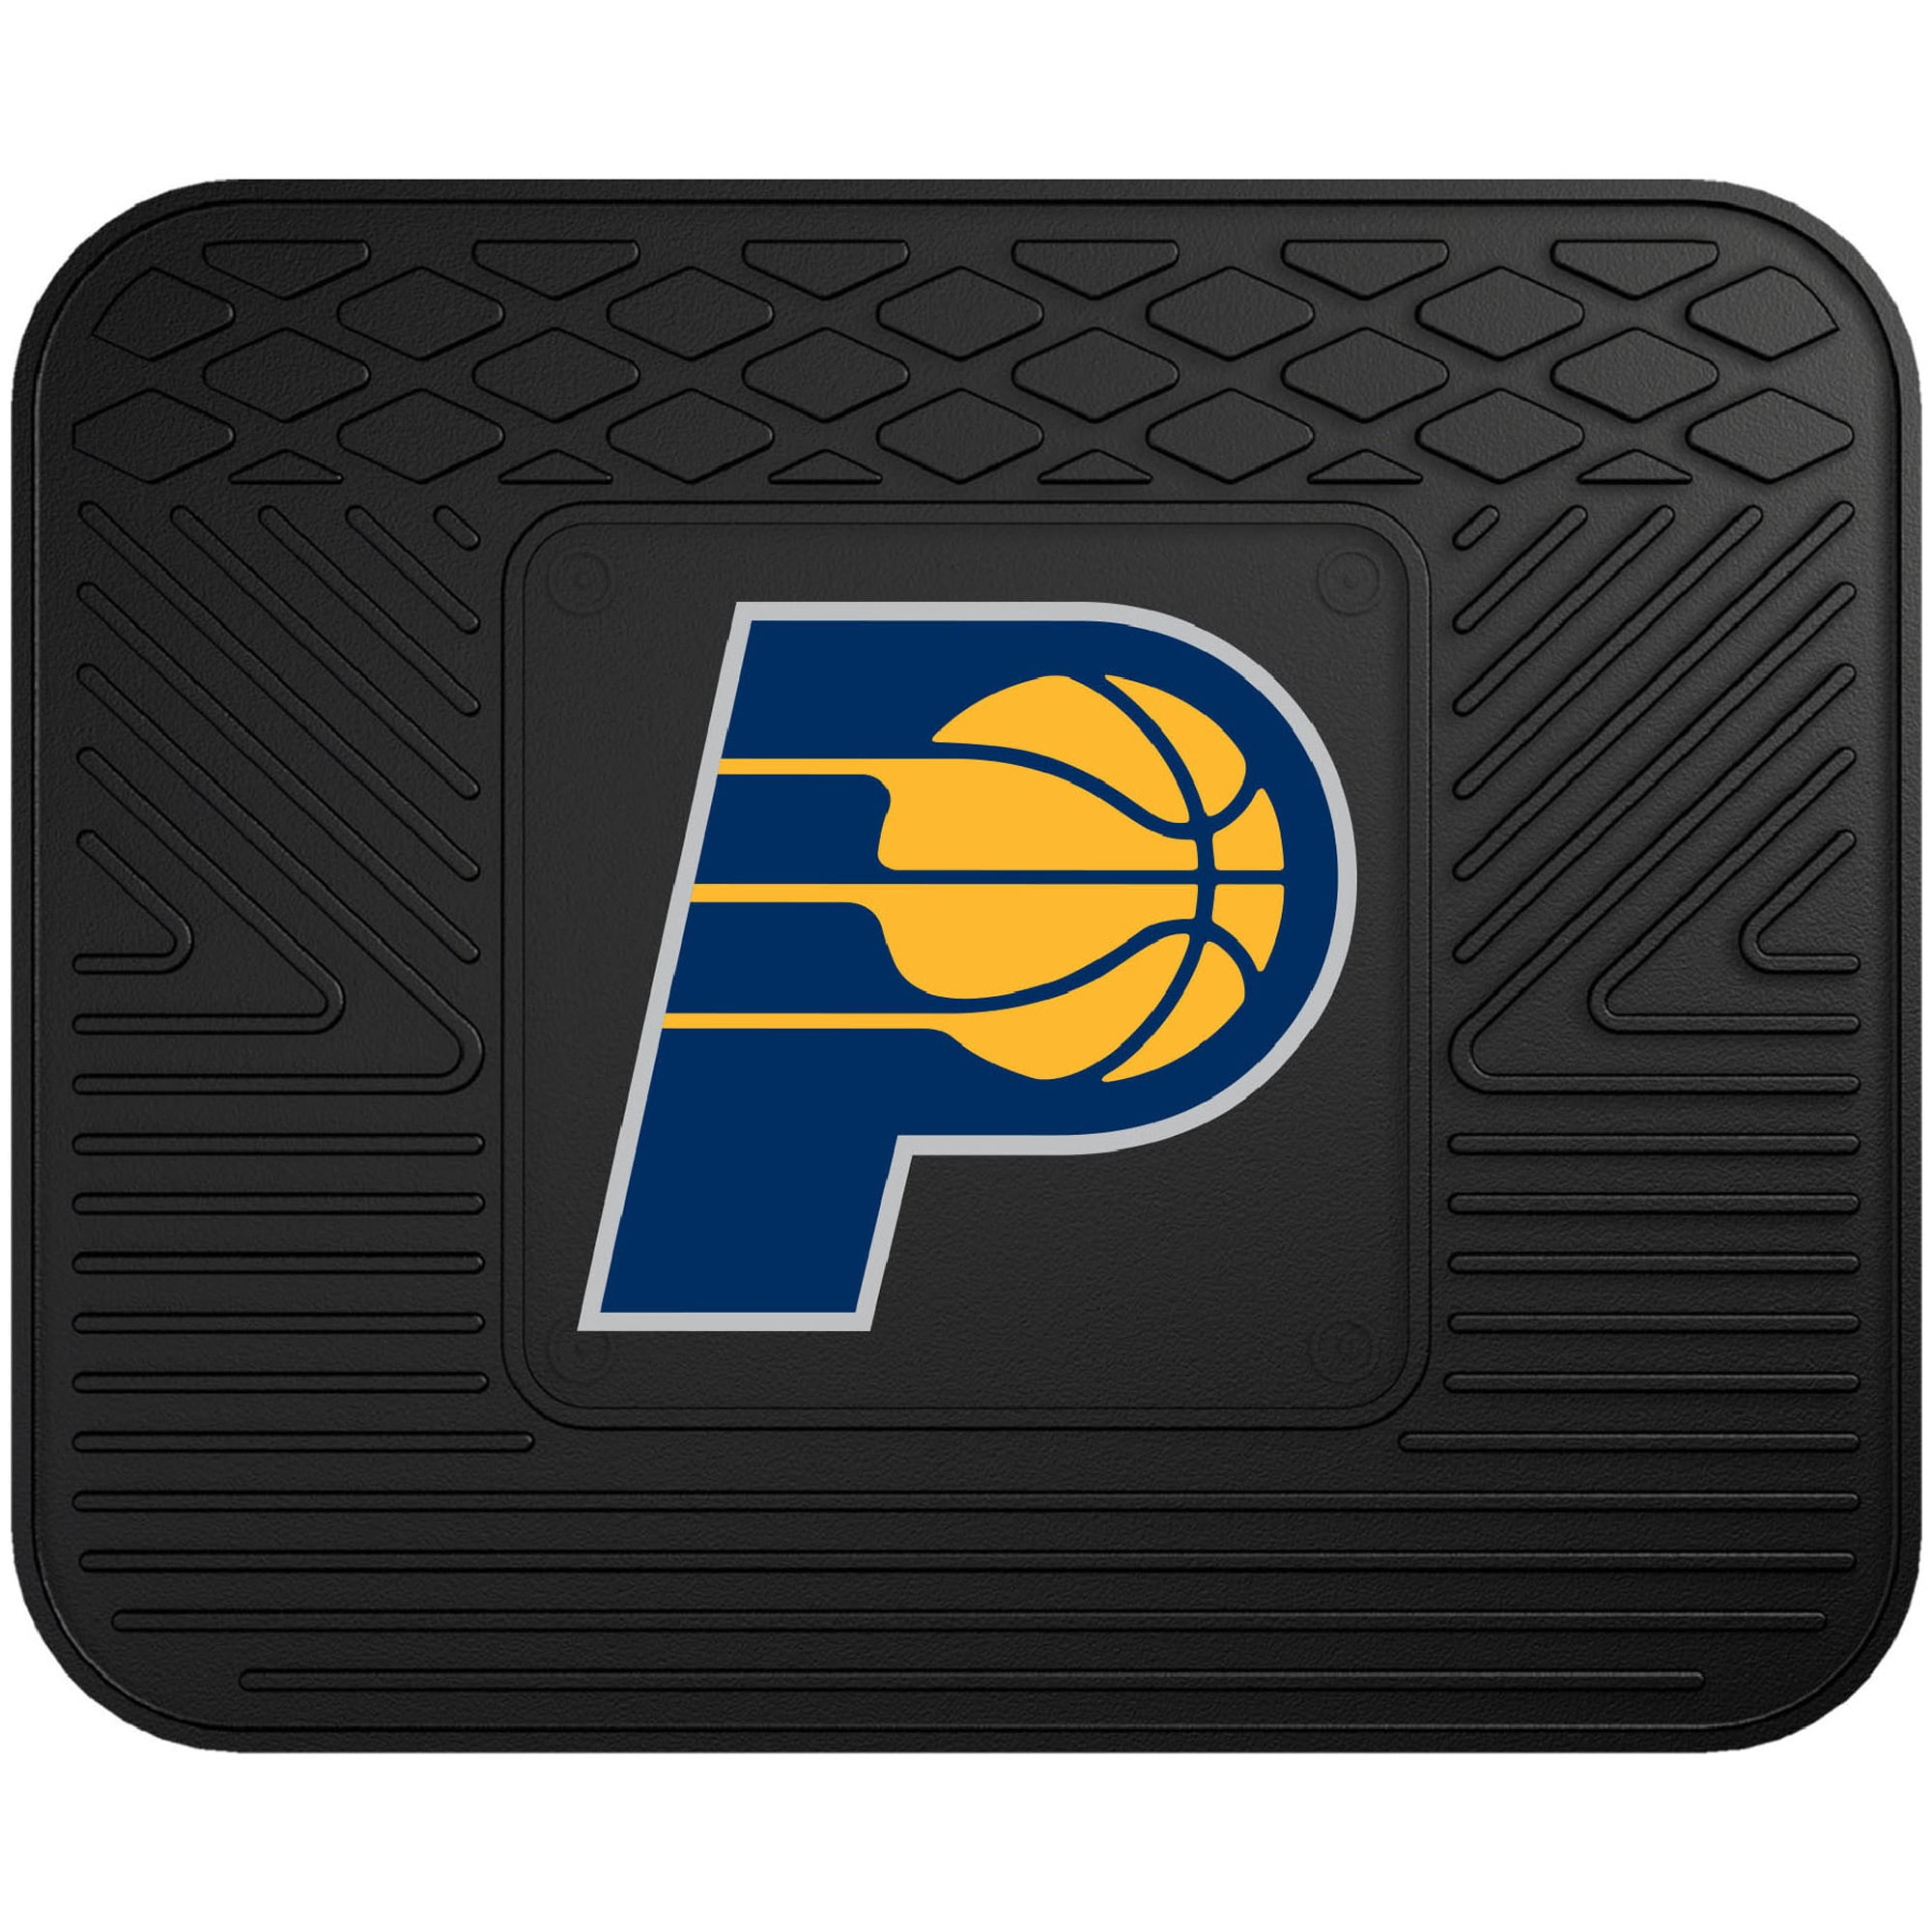 "Indiana Pacers 17"" x 14"" Utility Mat"